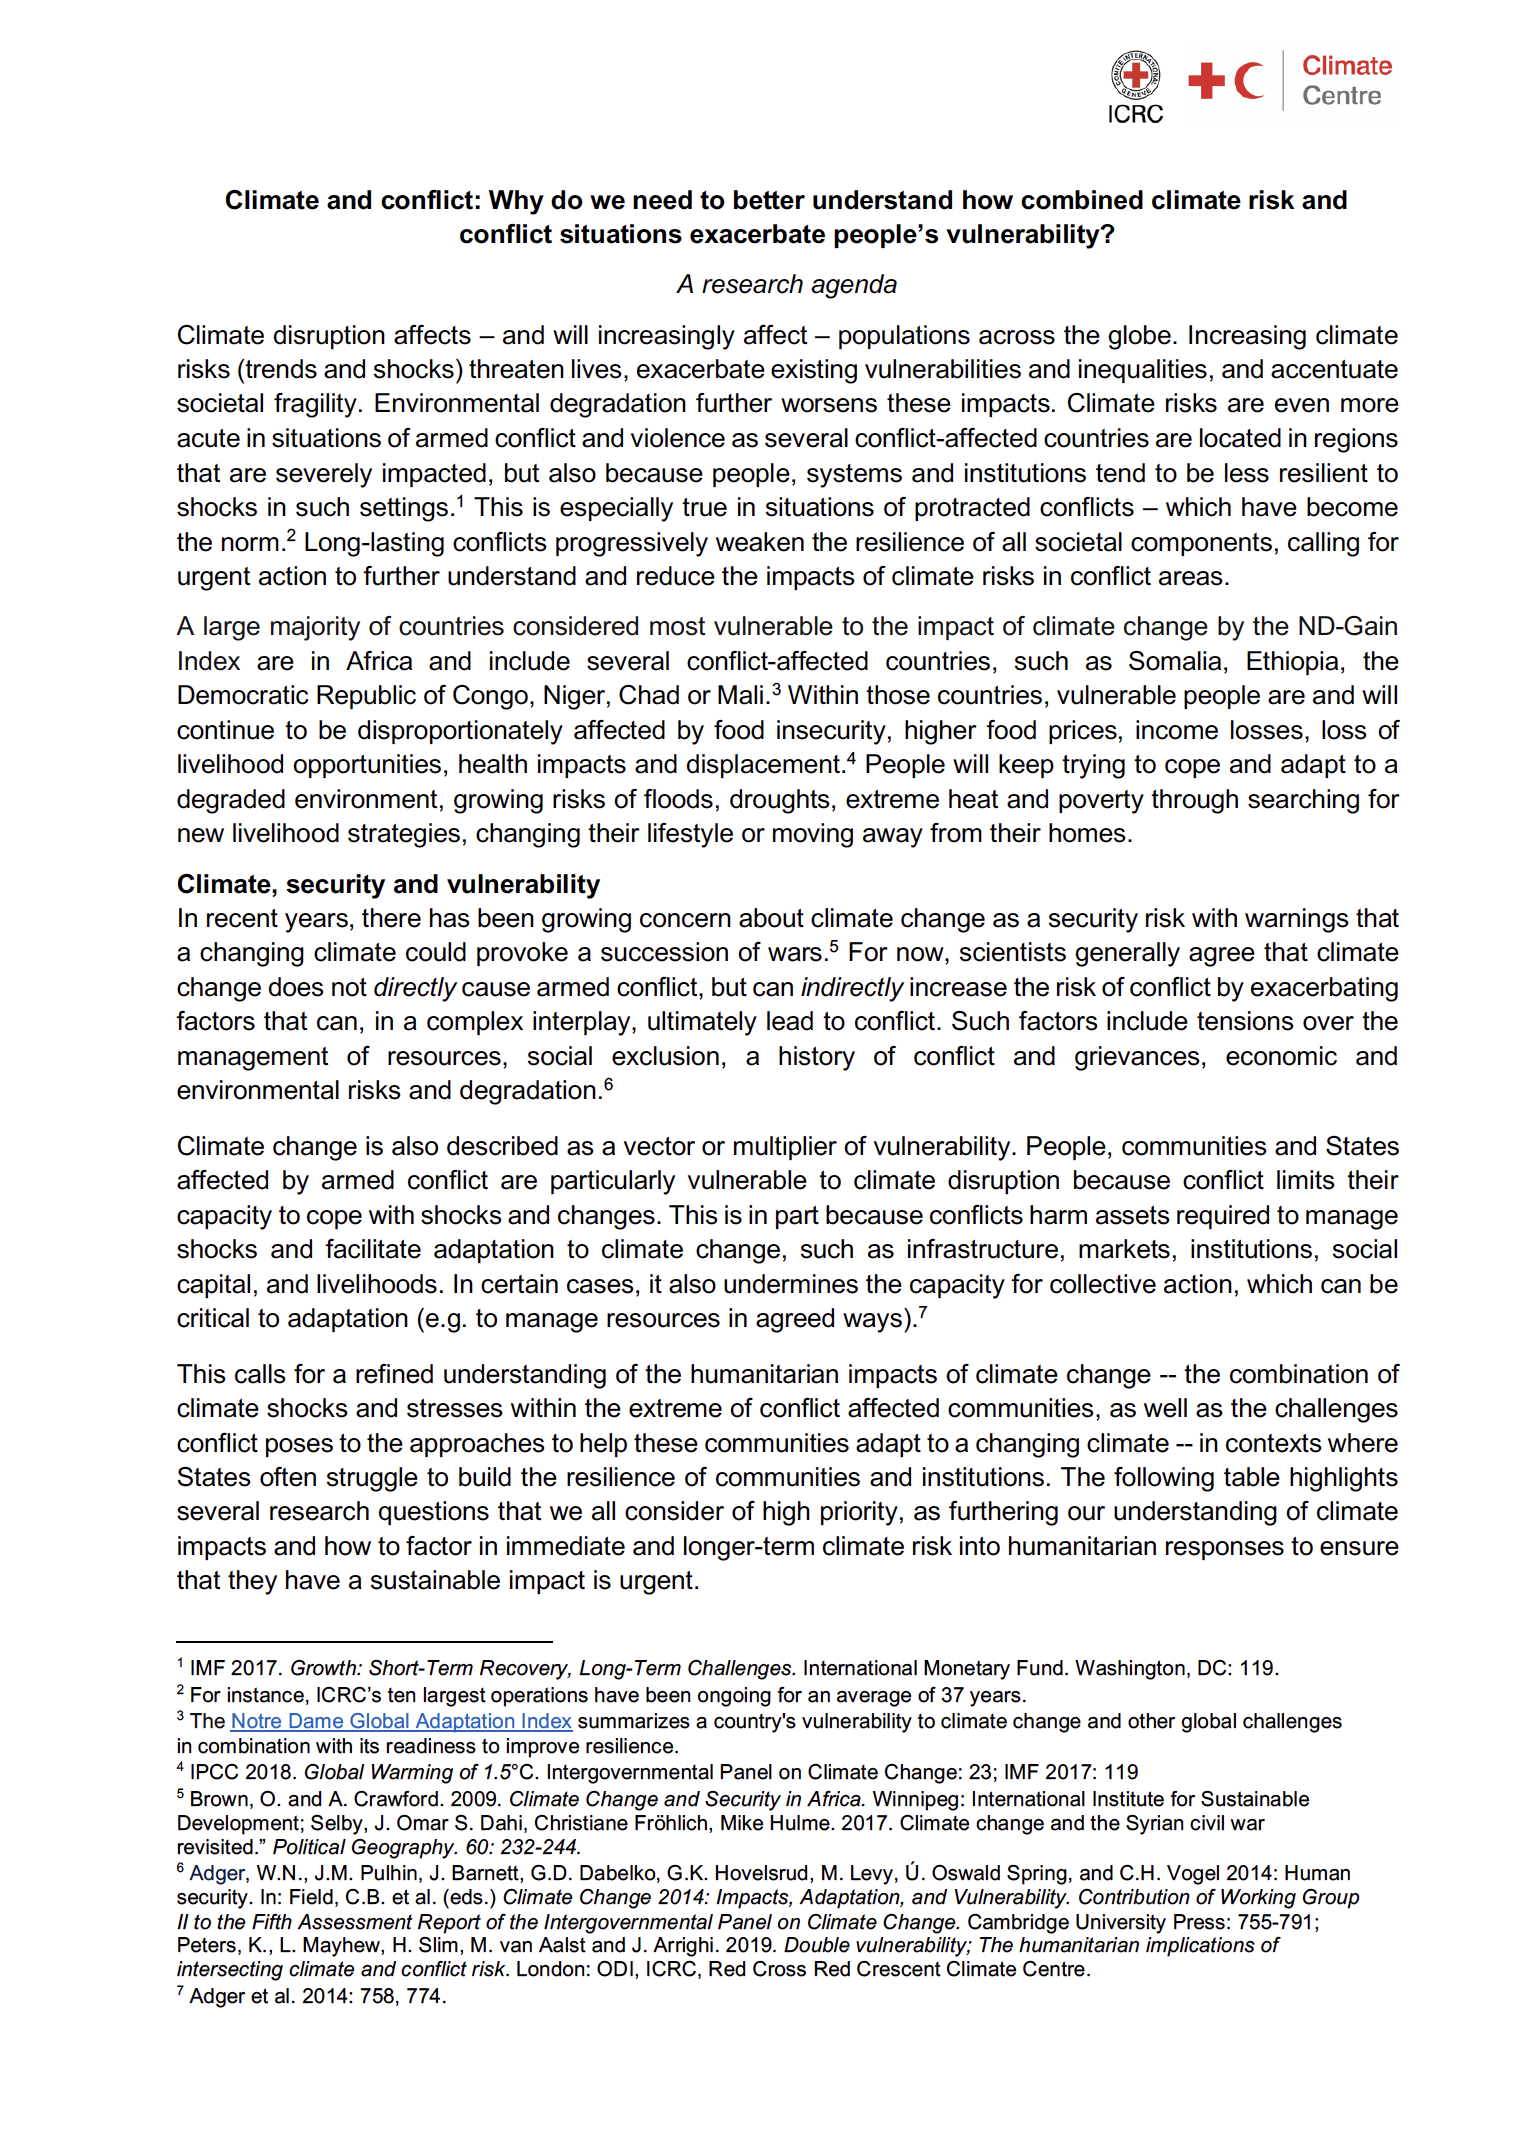 Climate and conflict: A research agenda